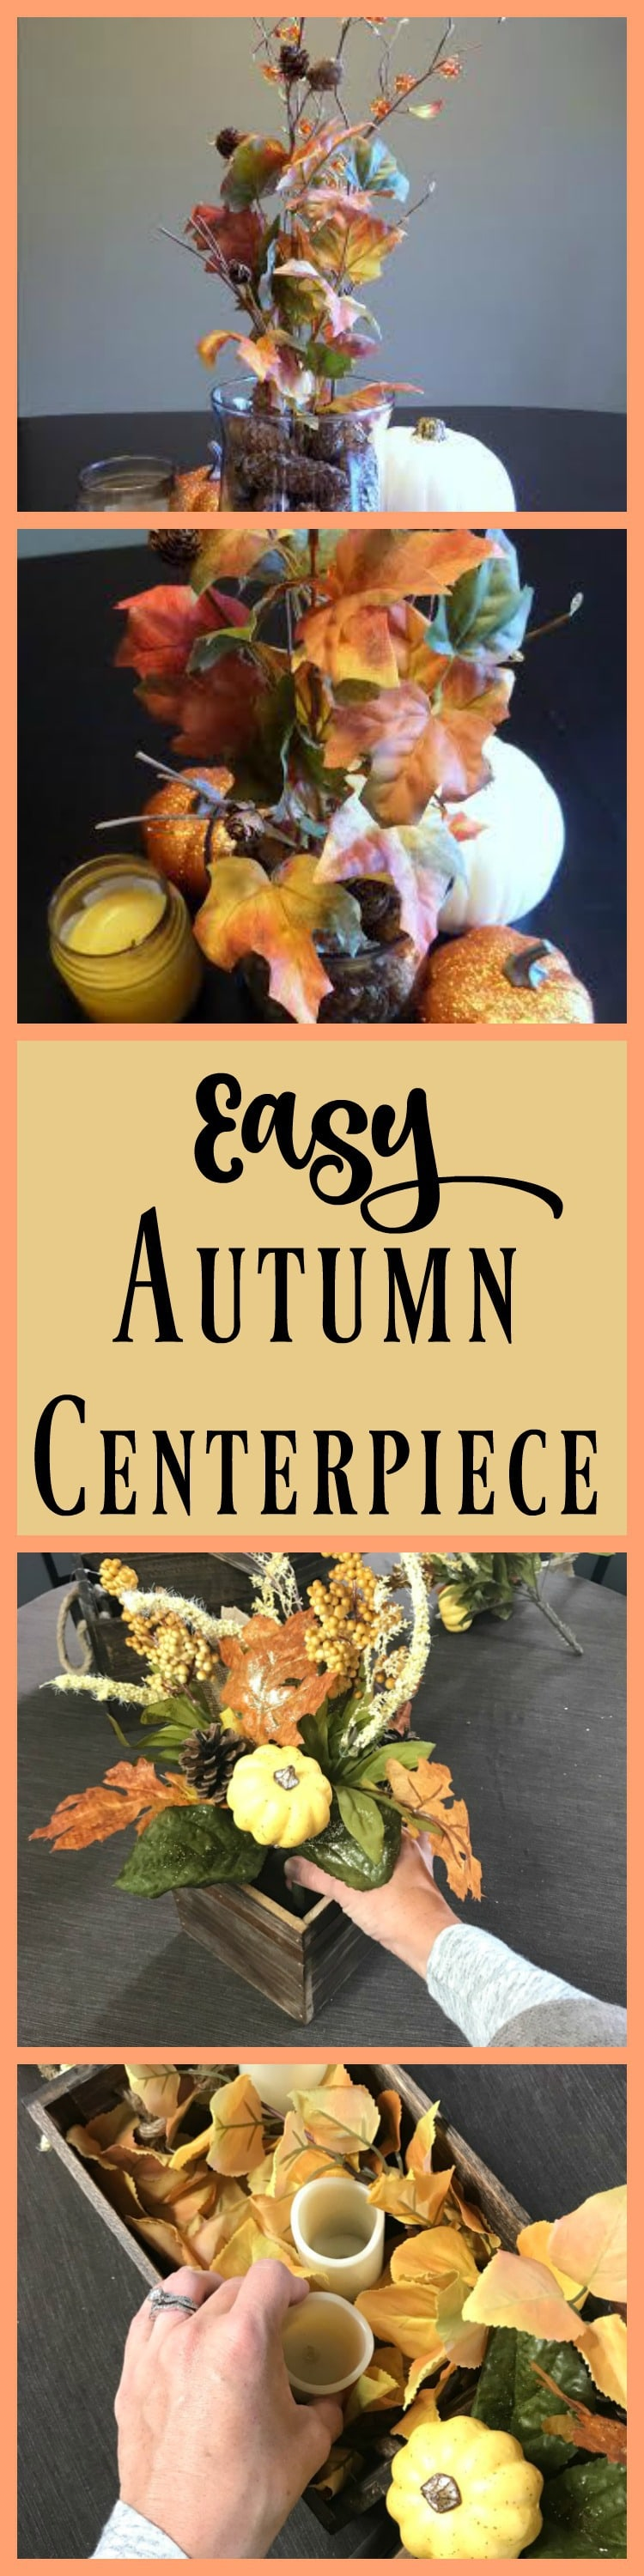 Easy Autumn Centerpiece Ideas